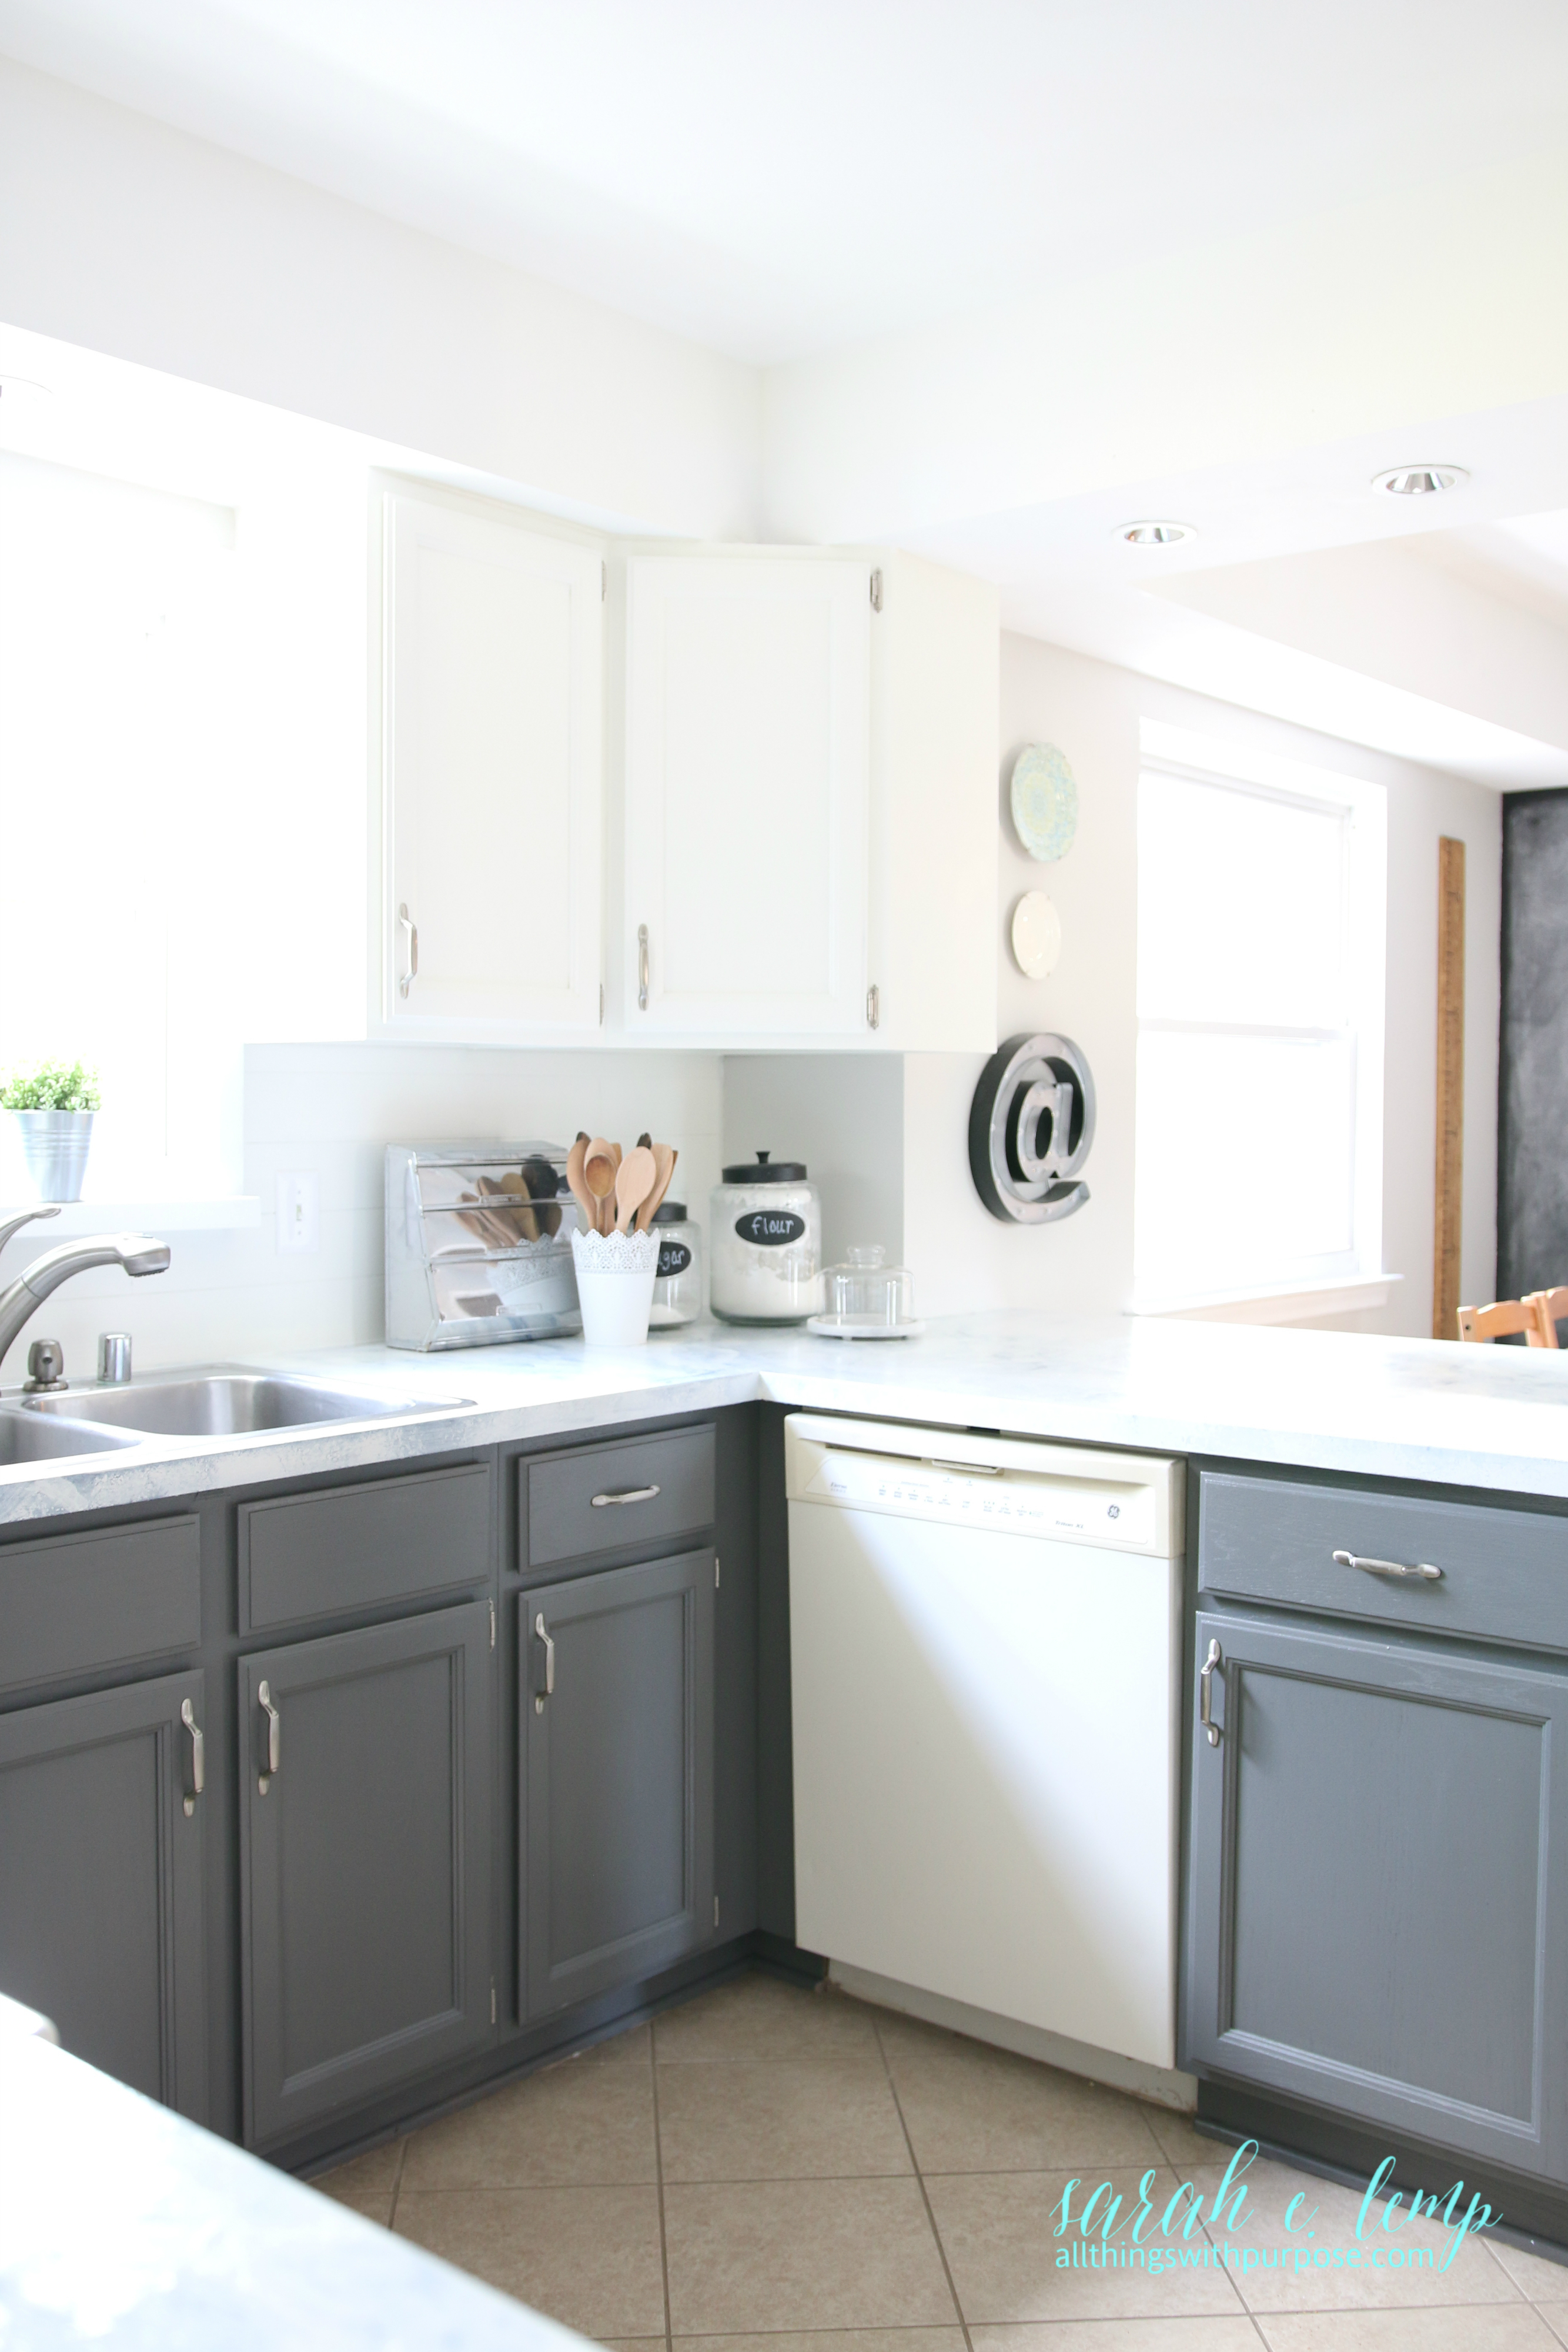 How To Hang New Kitchen Cabinets On Block Wall